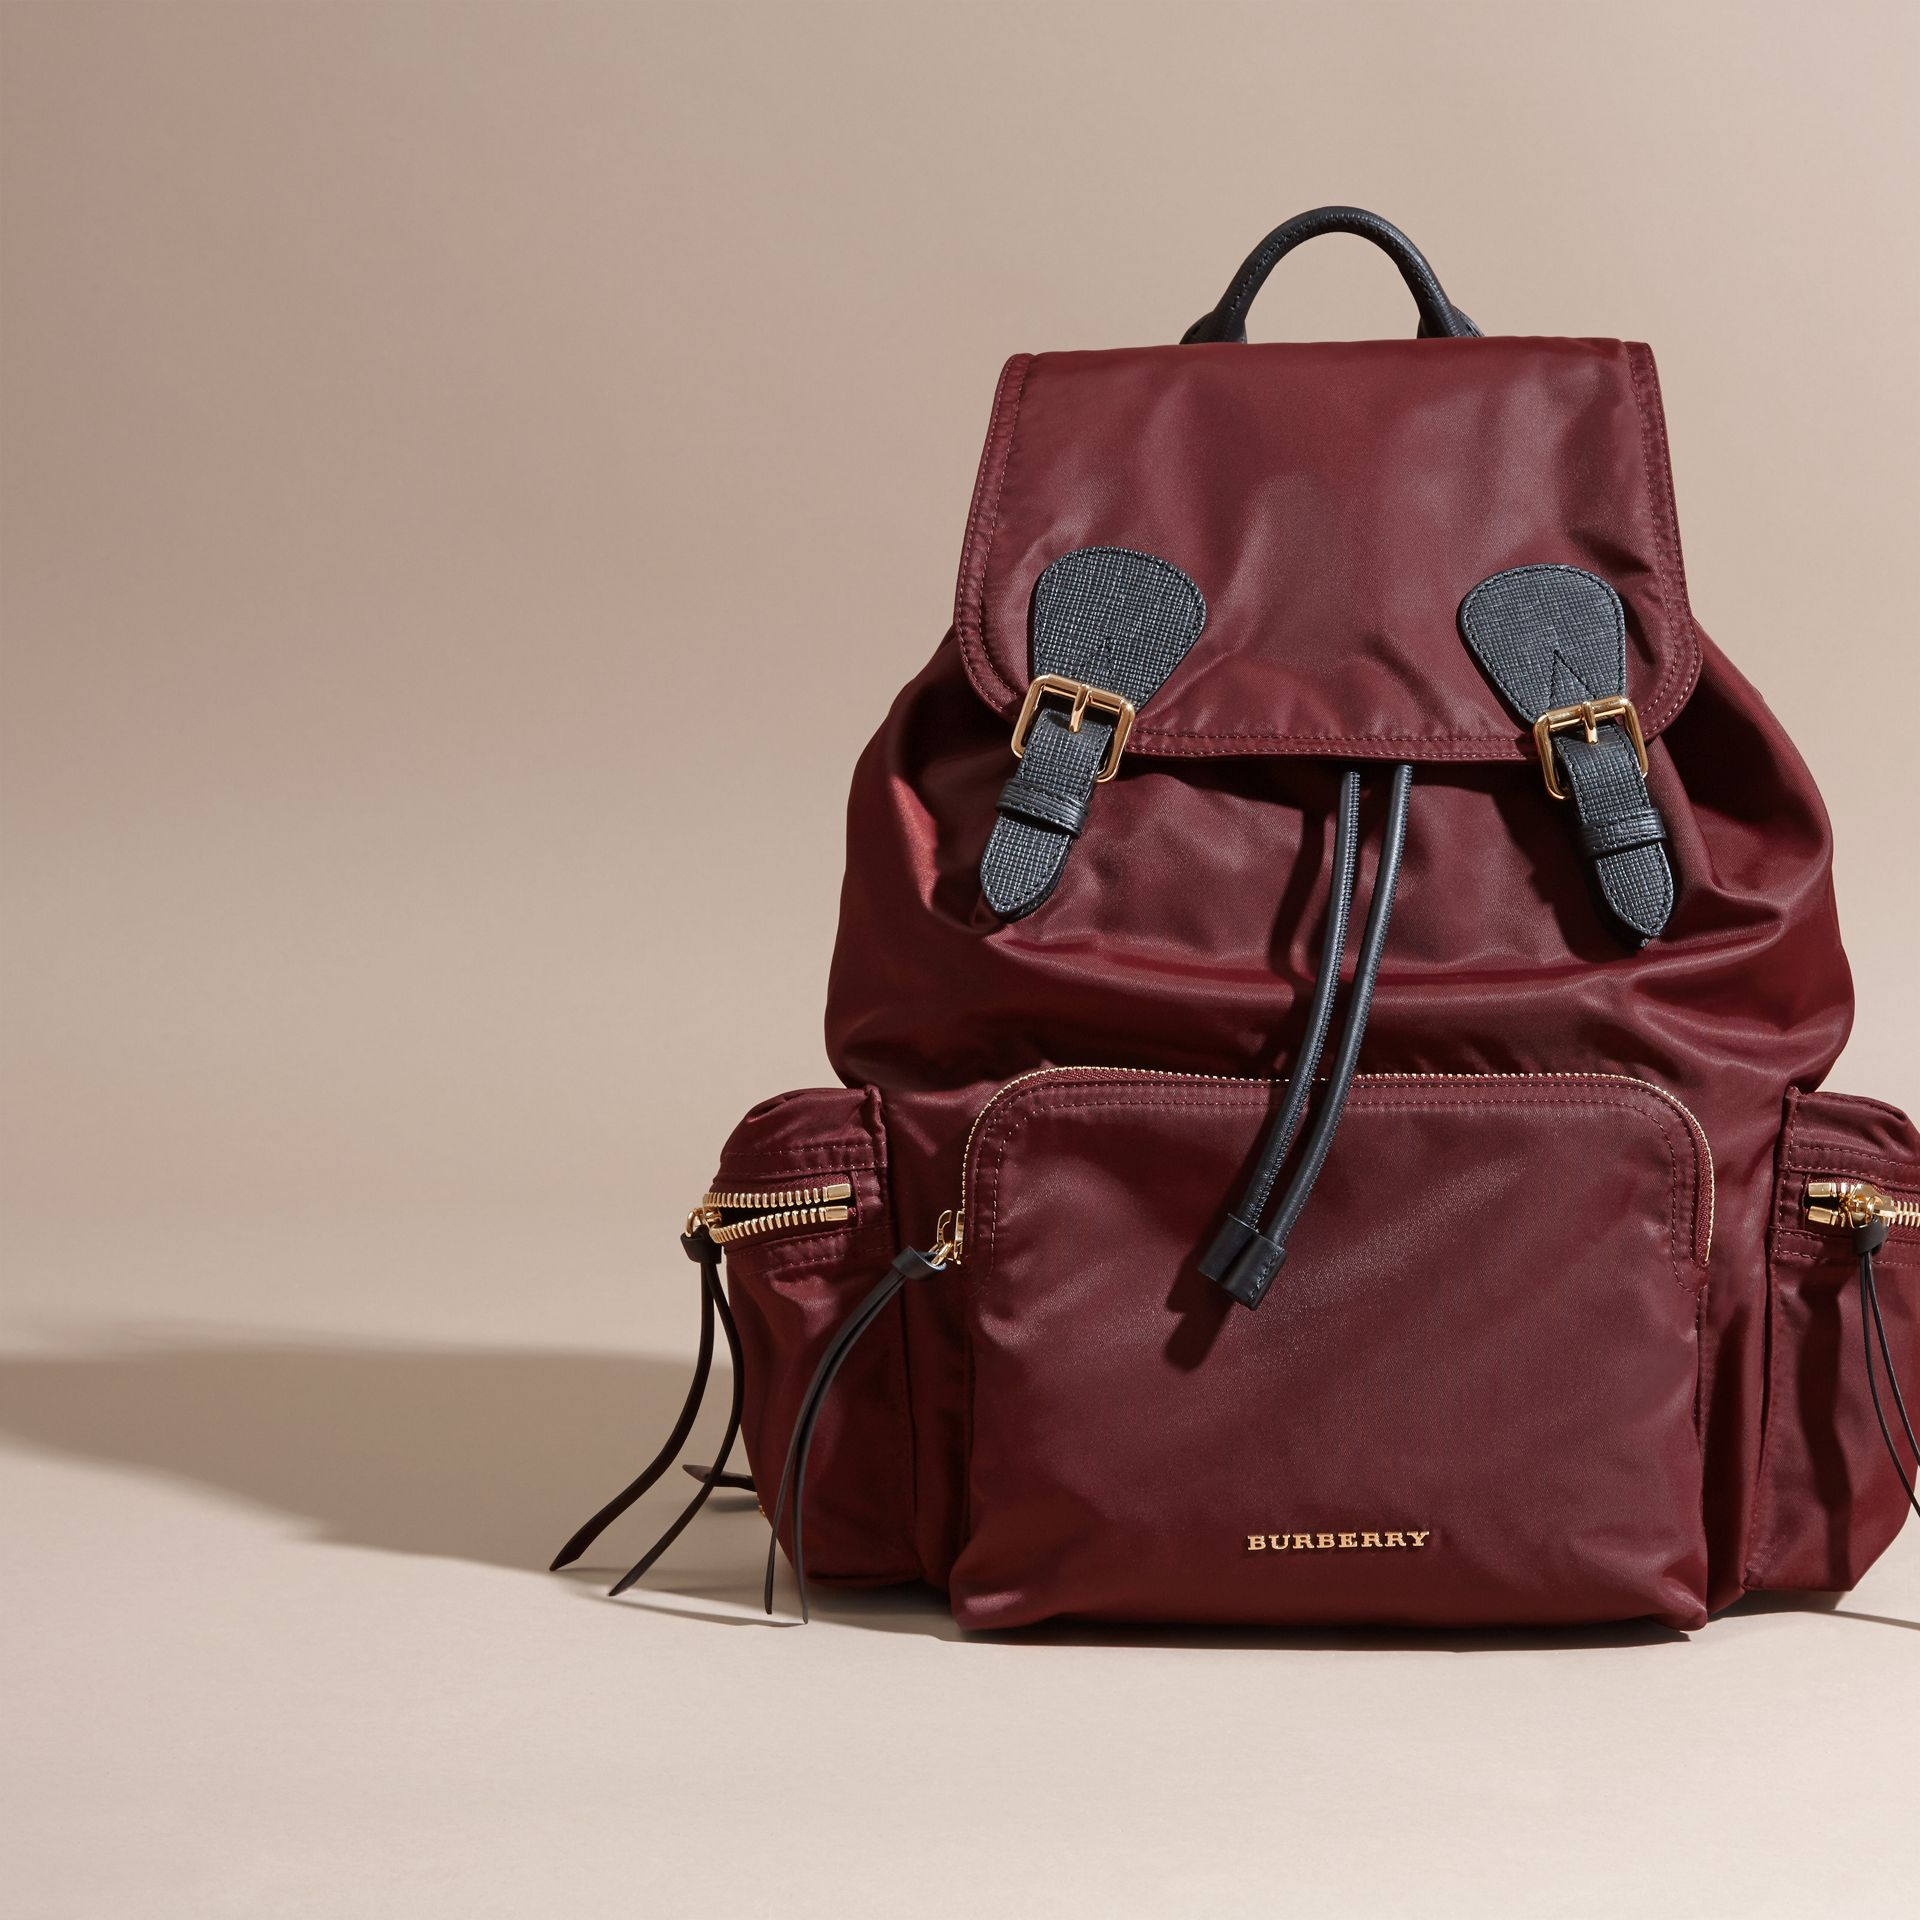 Burgundy red The Large Rucksack in Technical Nylon and Leather Burgundy Red - gallery image 8